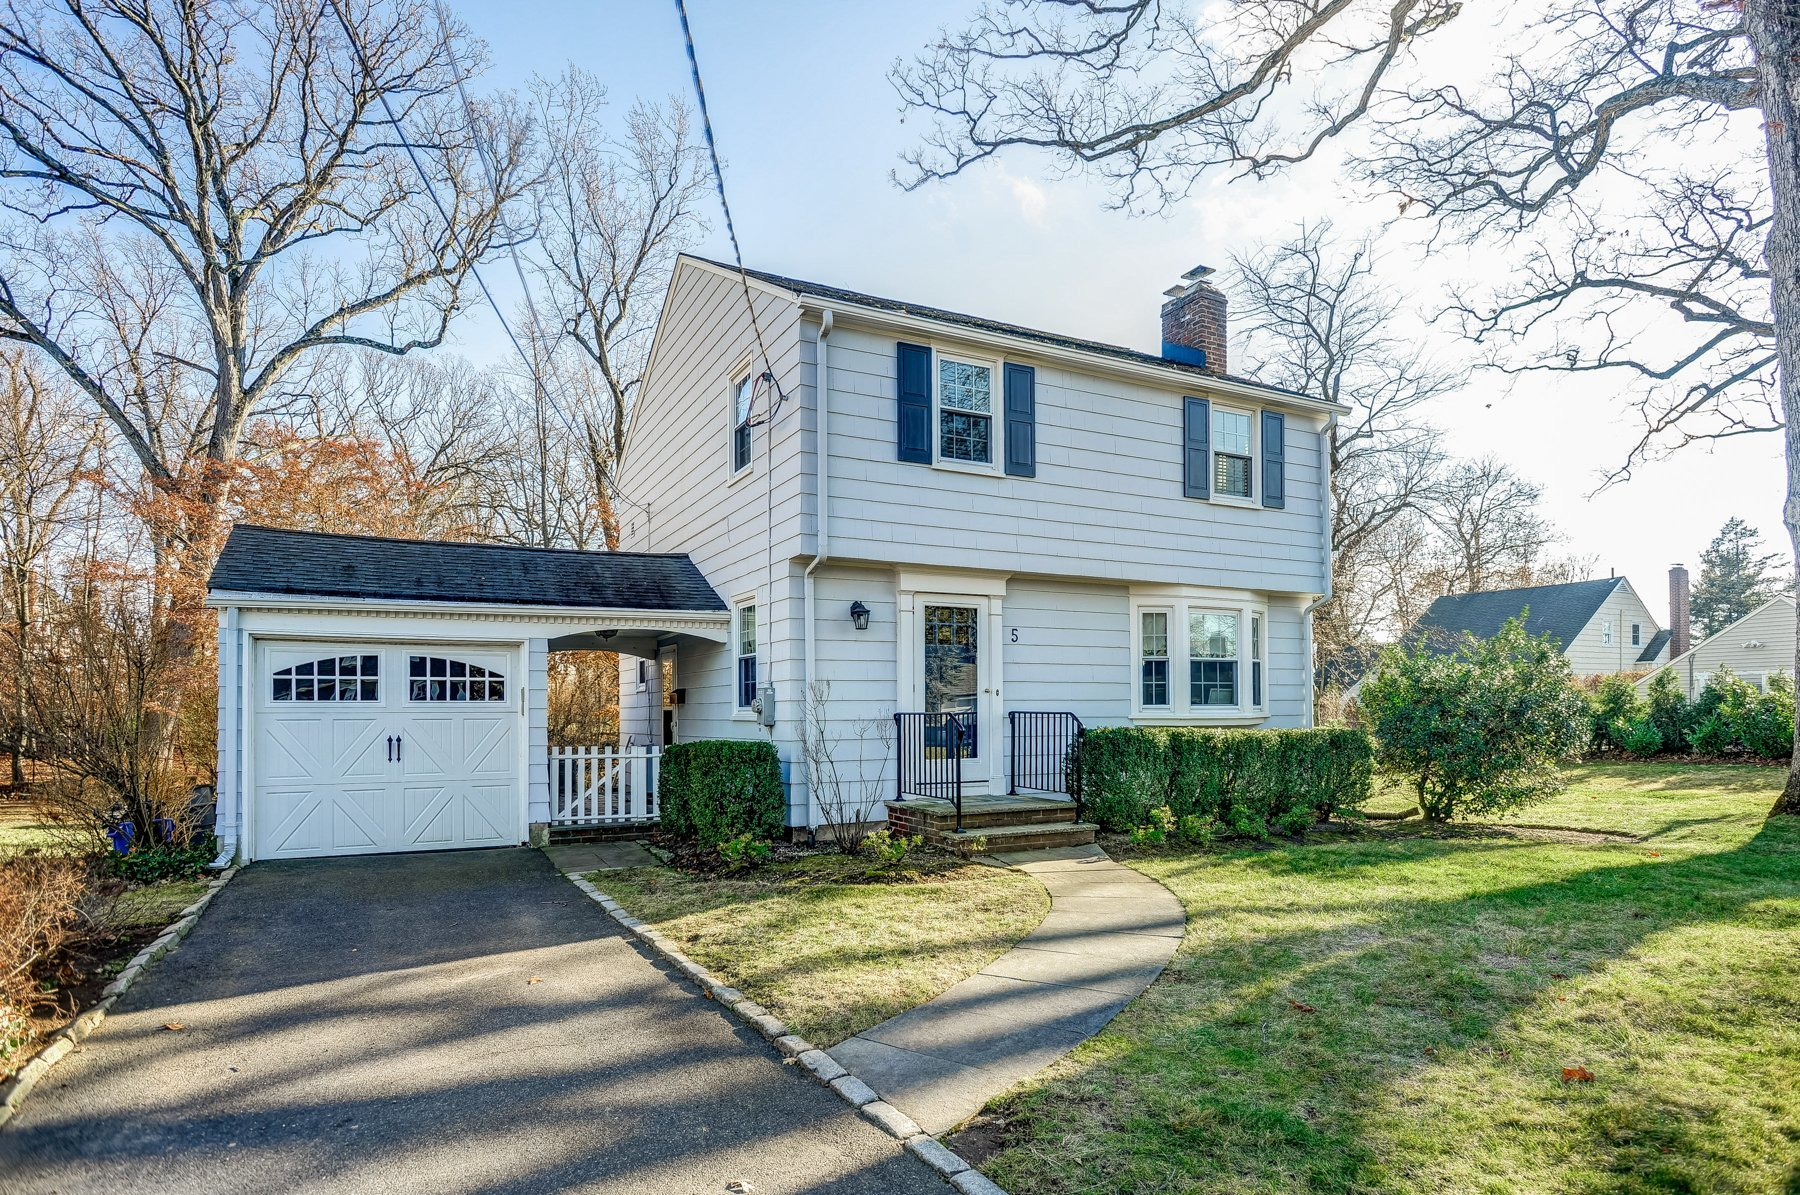 5 Shadylawn Dr, Madison NJ 07940. Home for sale in Madison